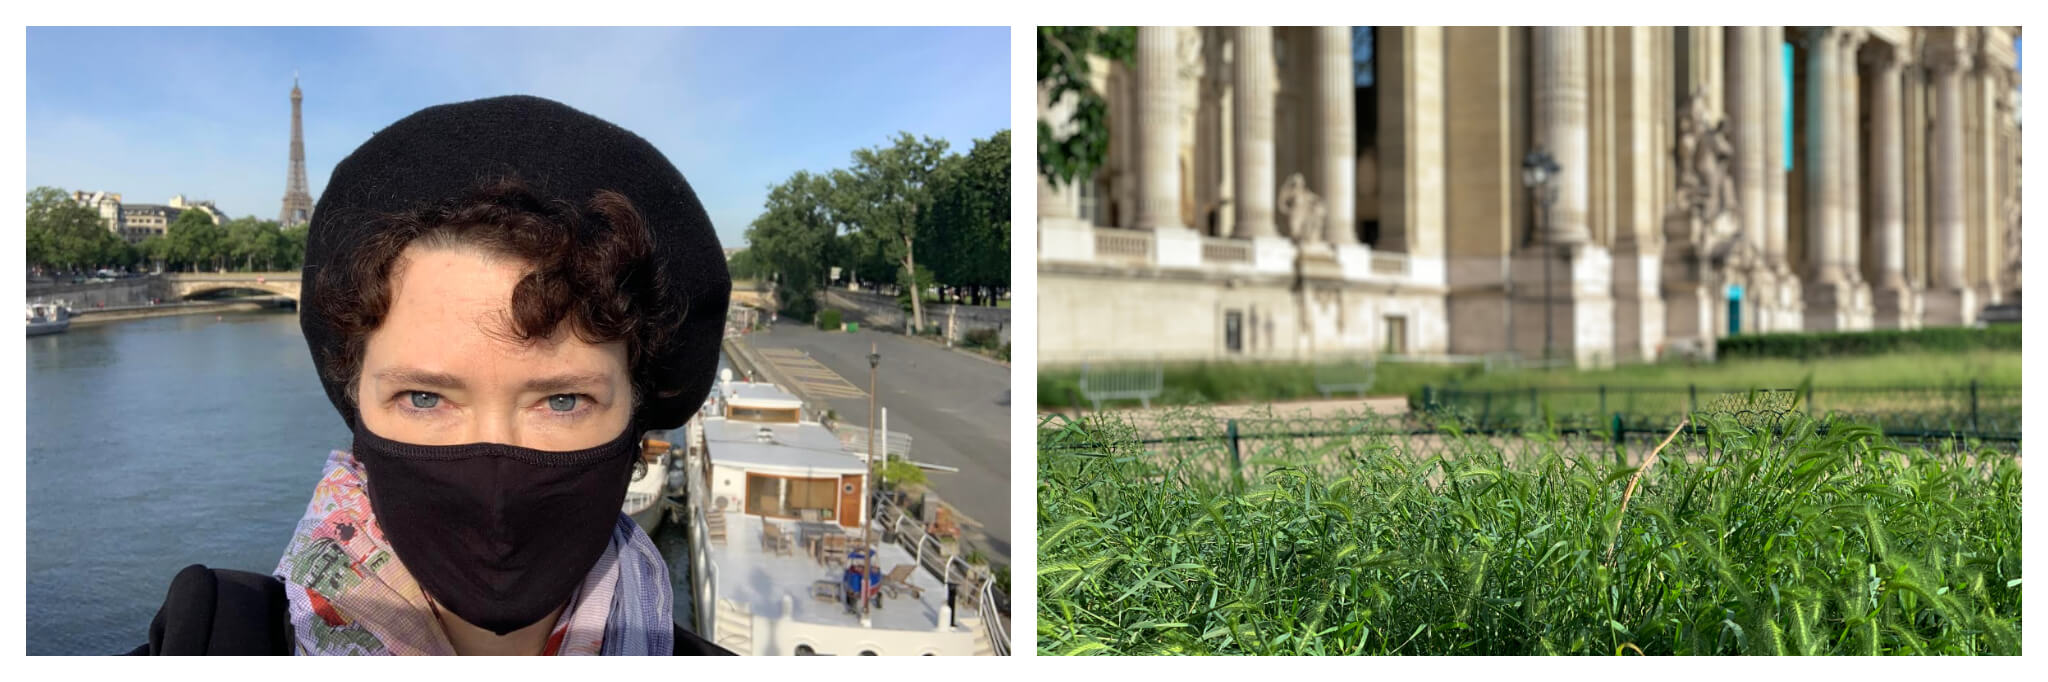 Left: Yvonne wearing a black face mask on her walk through Paris, the Seine and Eiffel tower are visible in the background / Grass grows in Paris as parks remain closed, a building is visible in the background